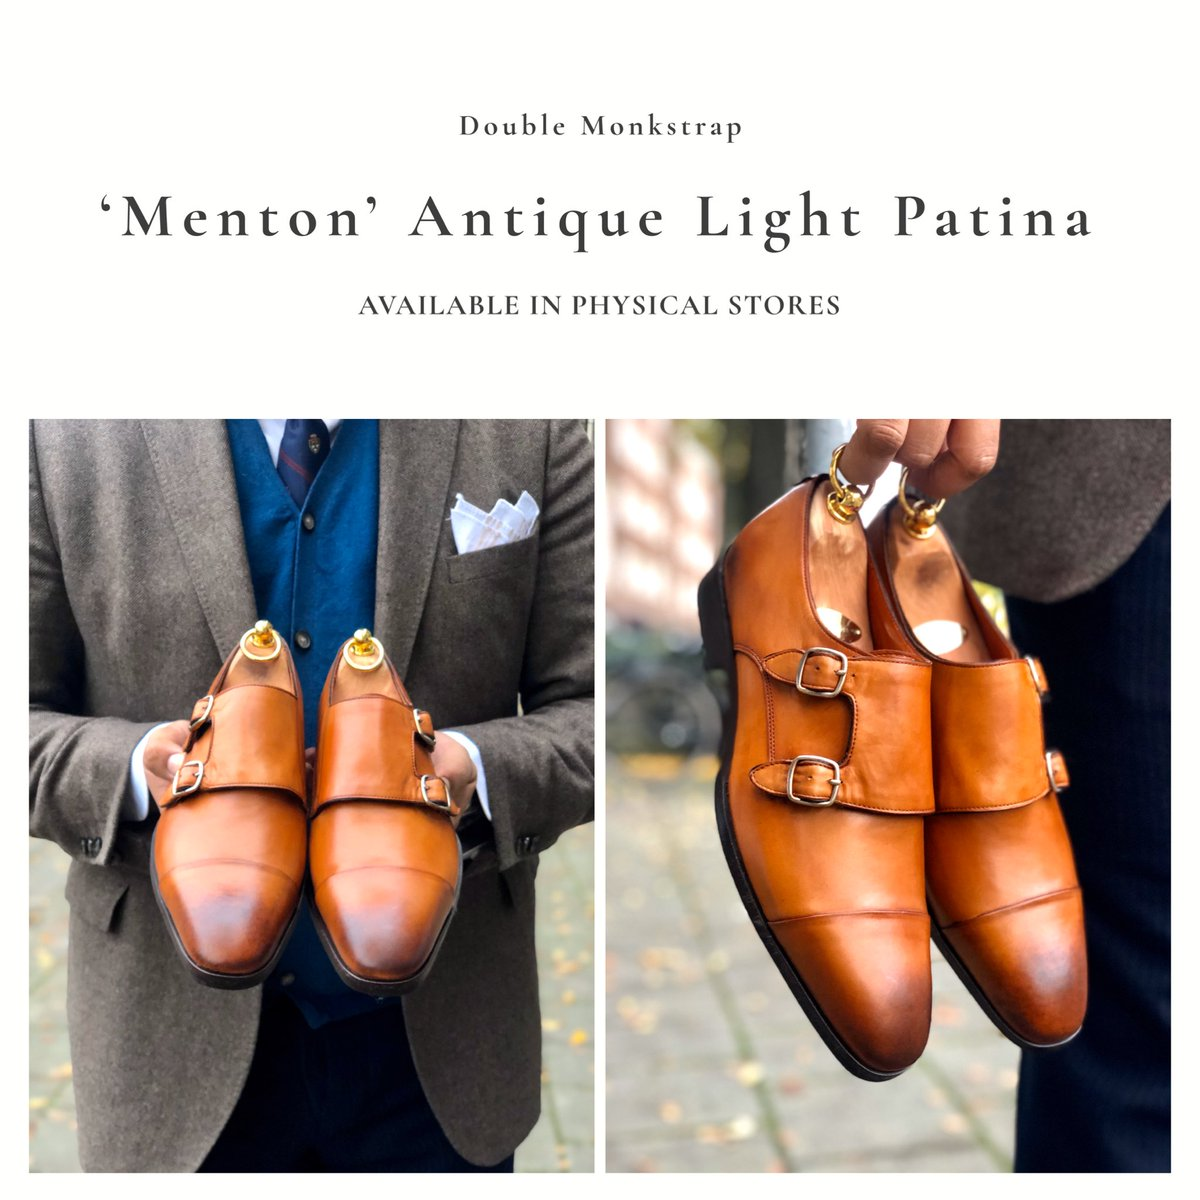 'Menton' Antique Light Patina  Available in physical stores.  Limited Edition.    #reinhardfrans #handmade #shoes #madewithlove #limitededition #menton #patina  #stylish #shopping #onlineshopping